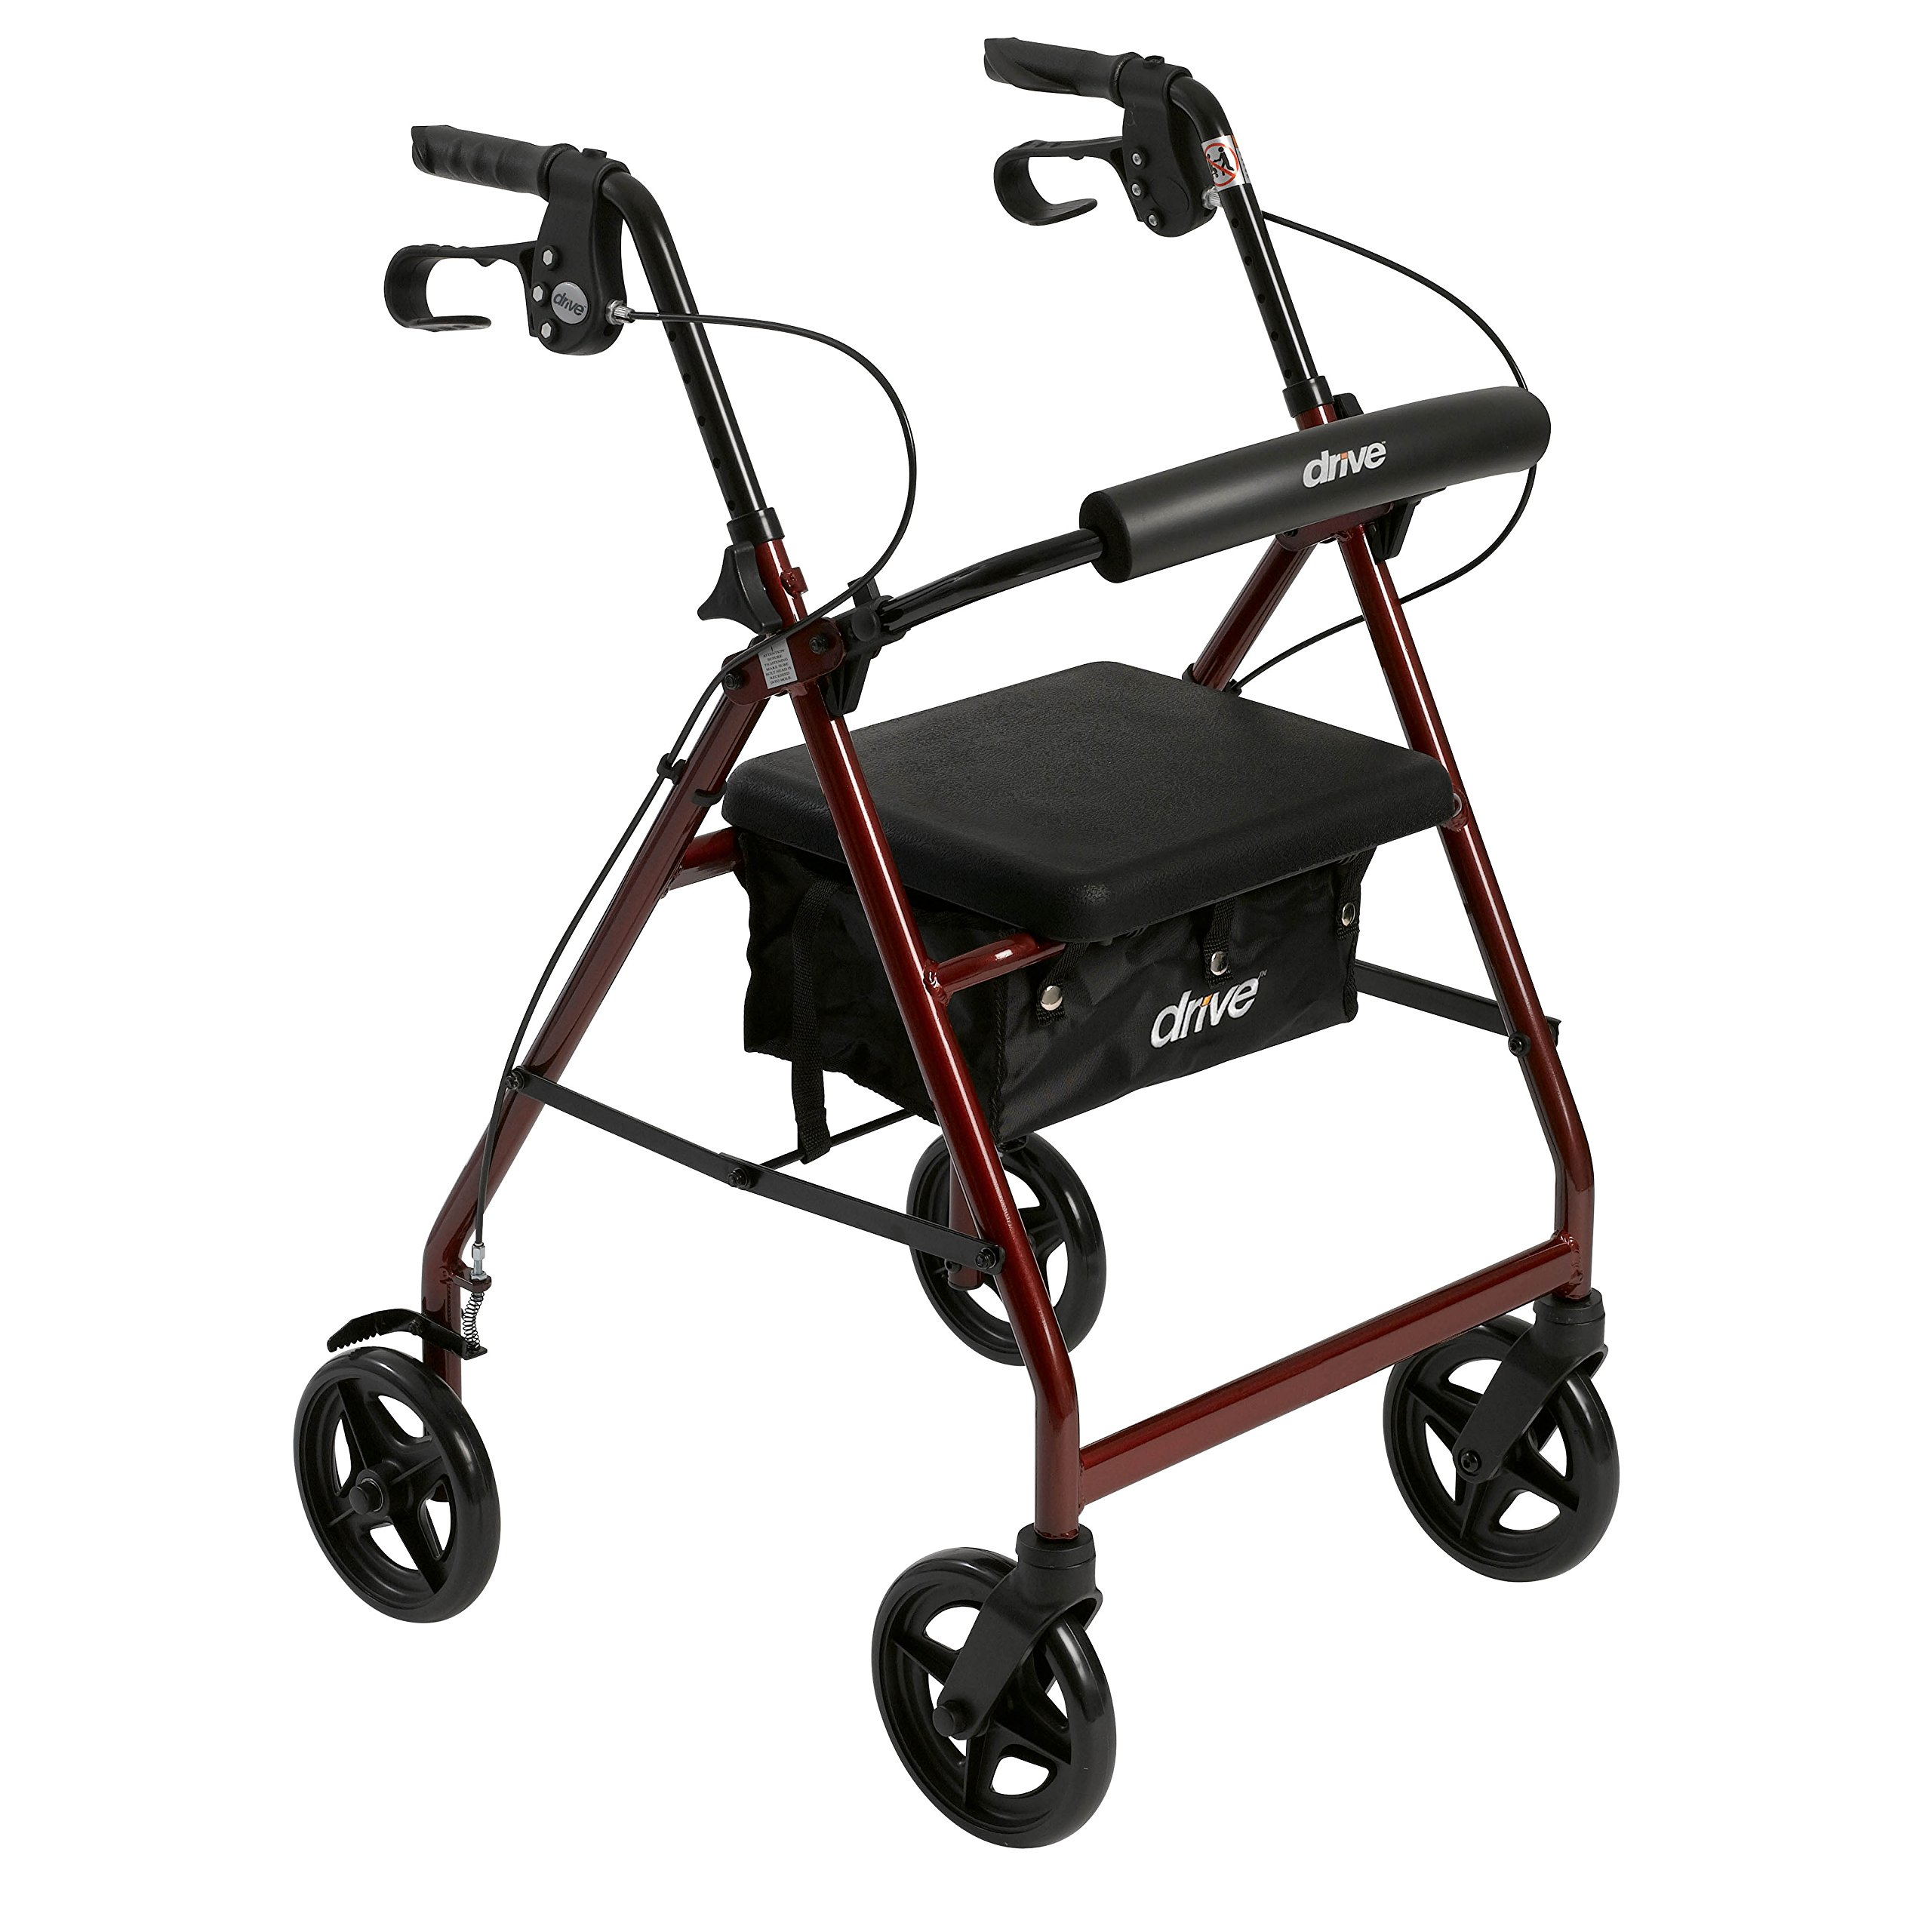 Drive Medical Aluminum Rollator Fold Up and Removable Back Support, Padded Seat with 7.5-Inch Casters, Red by Drive Medical